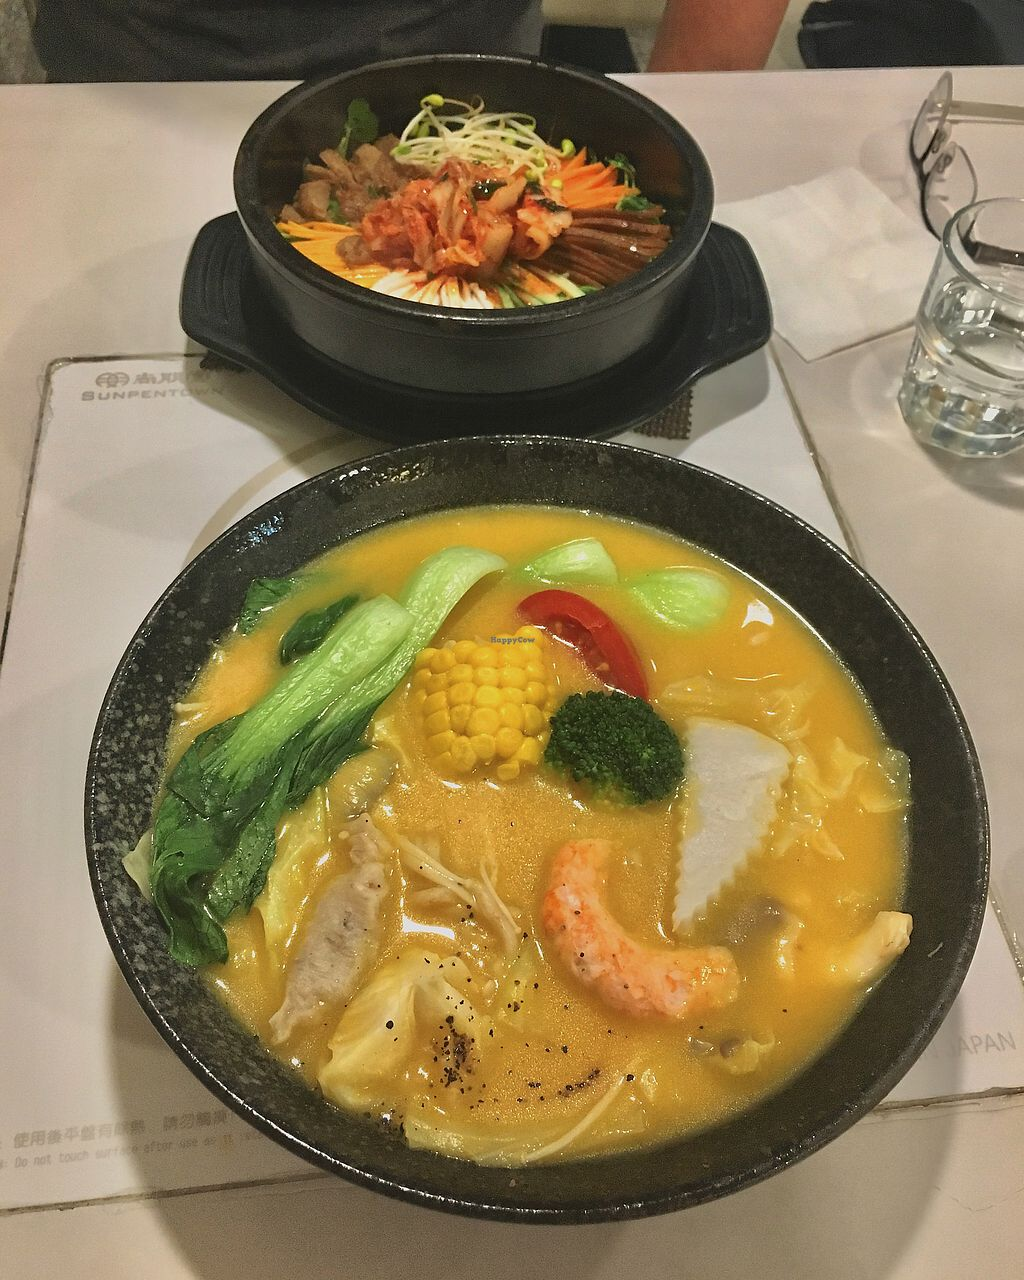 """Photo of Loving Hut - Guangfu South Rd  by <a href=""""/members/profile/CamilaSilvaL"""">CamilaSilvaL</a> <br/>Kimchi bibimbap & pumpkin curry soup  <br/> April 5, 2018  - <a href='/contact/abuse/image/17062/381192'>Report</a>"""